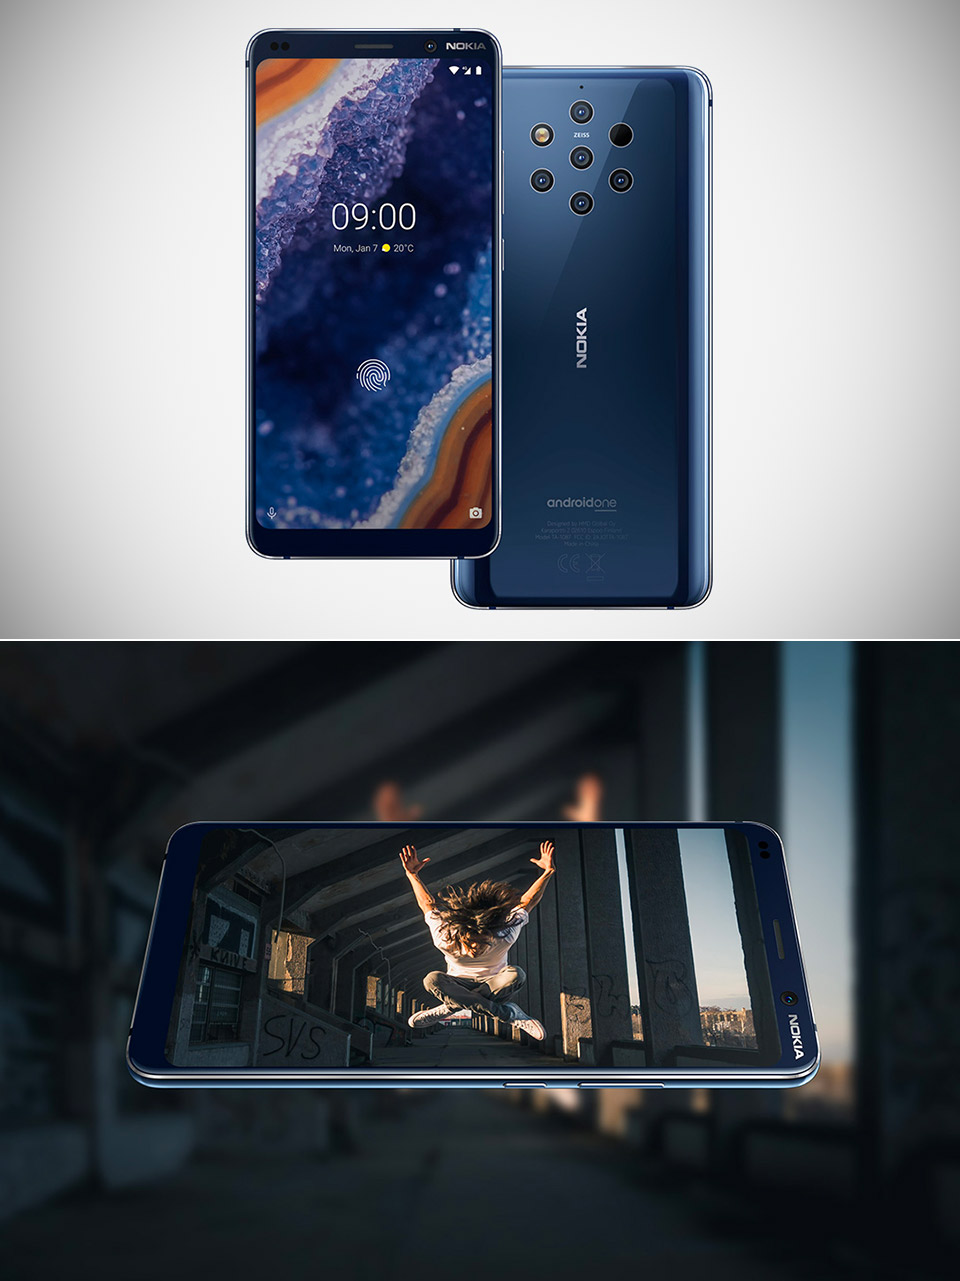 HMD Global Nokia 9 PureView